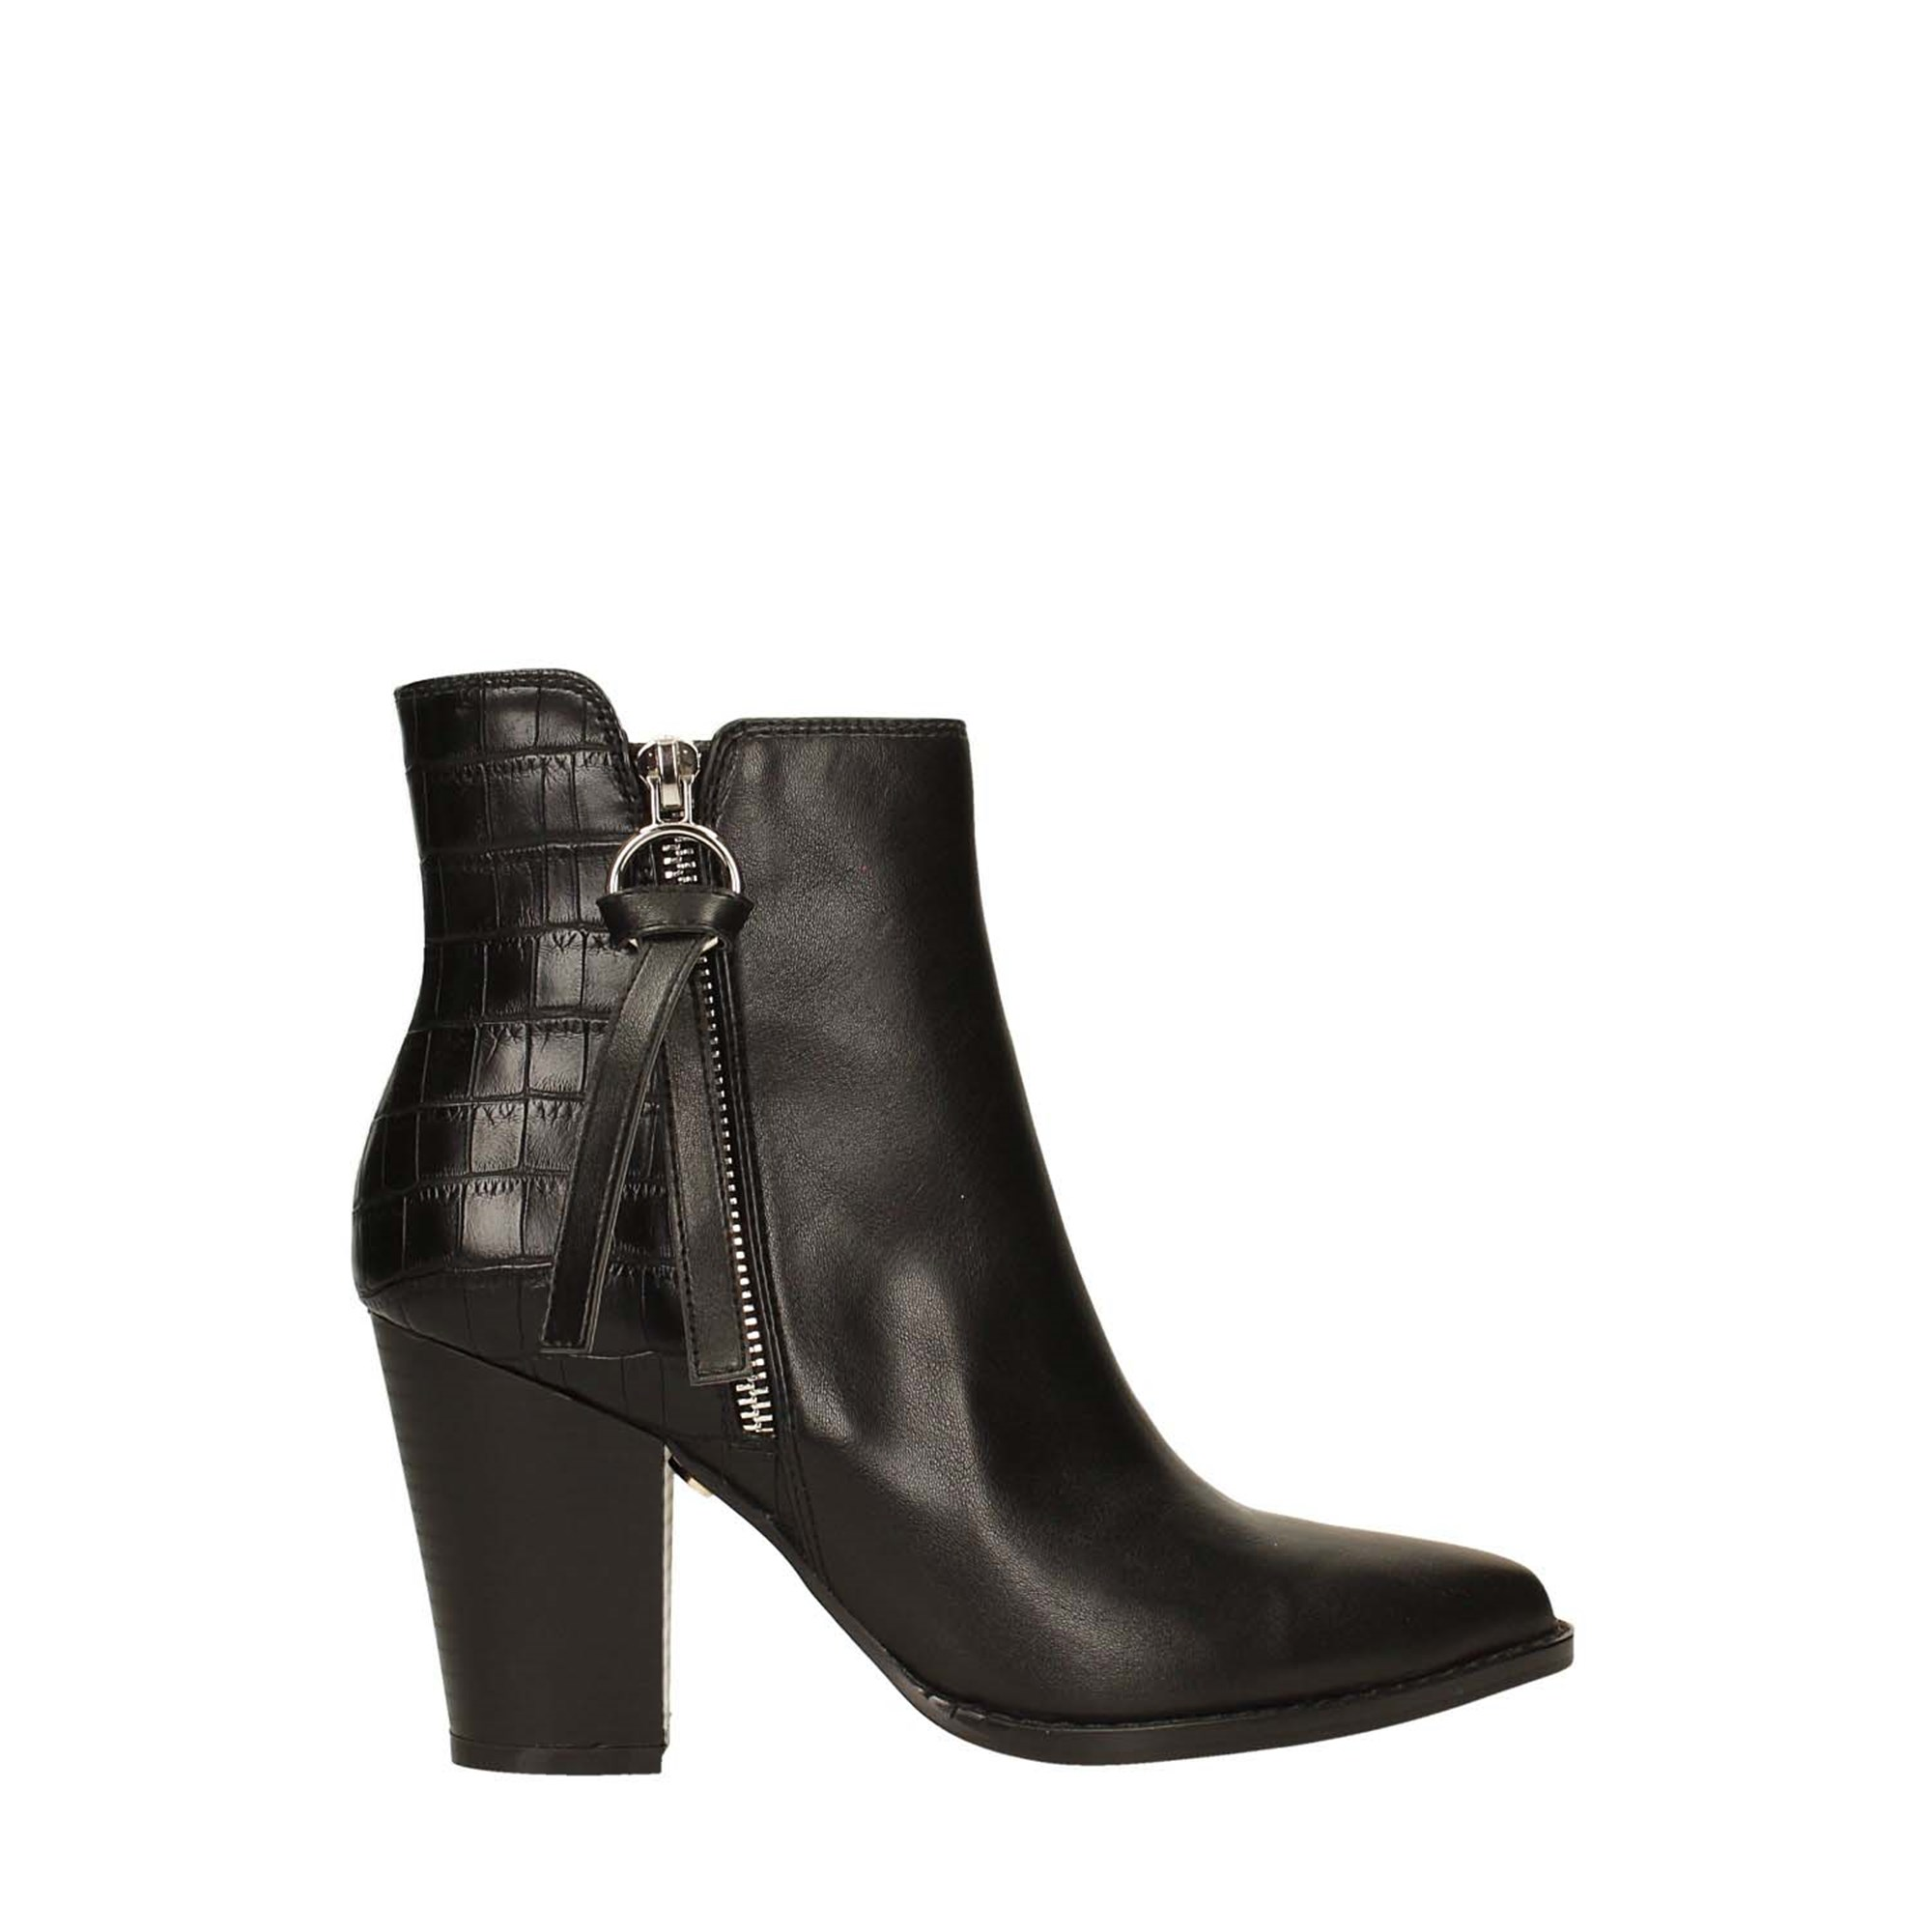 Tata Italia Shoes Woman Stivaletti 2280B-8-Z